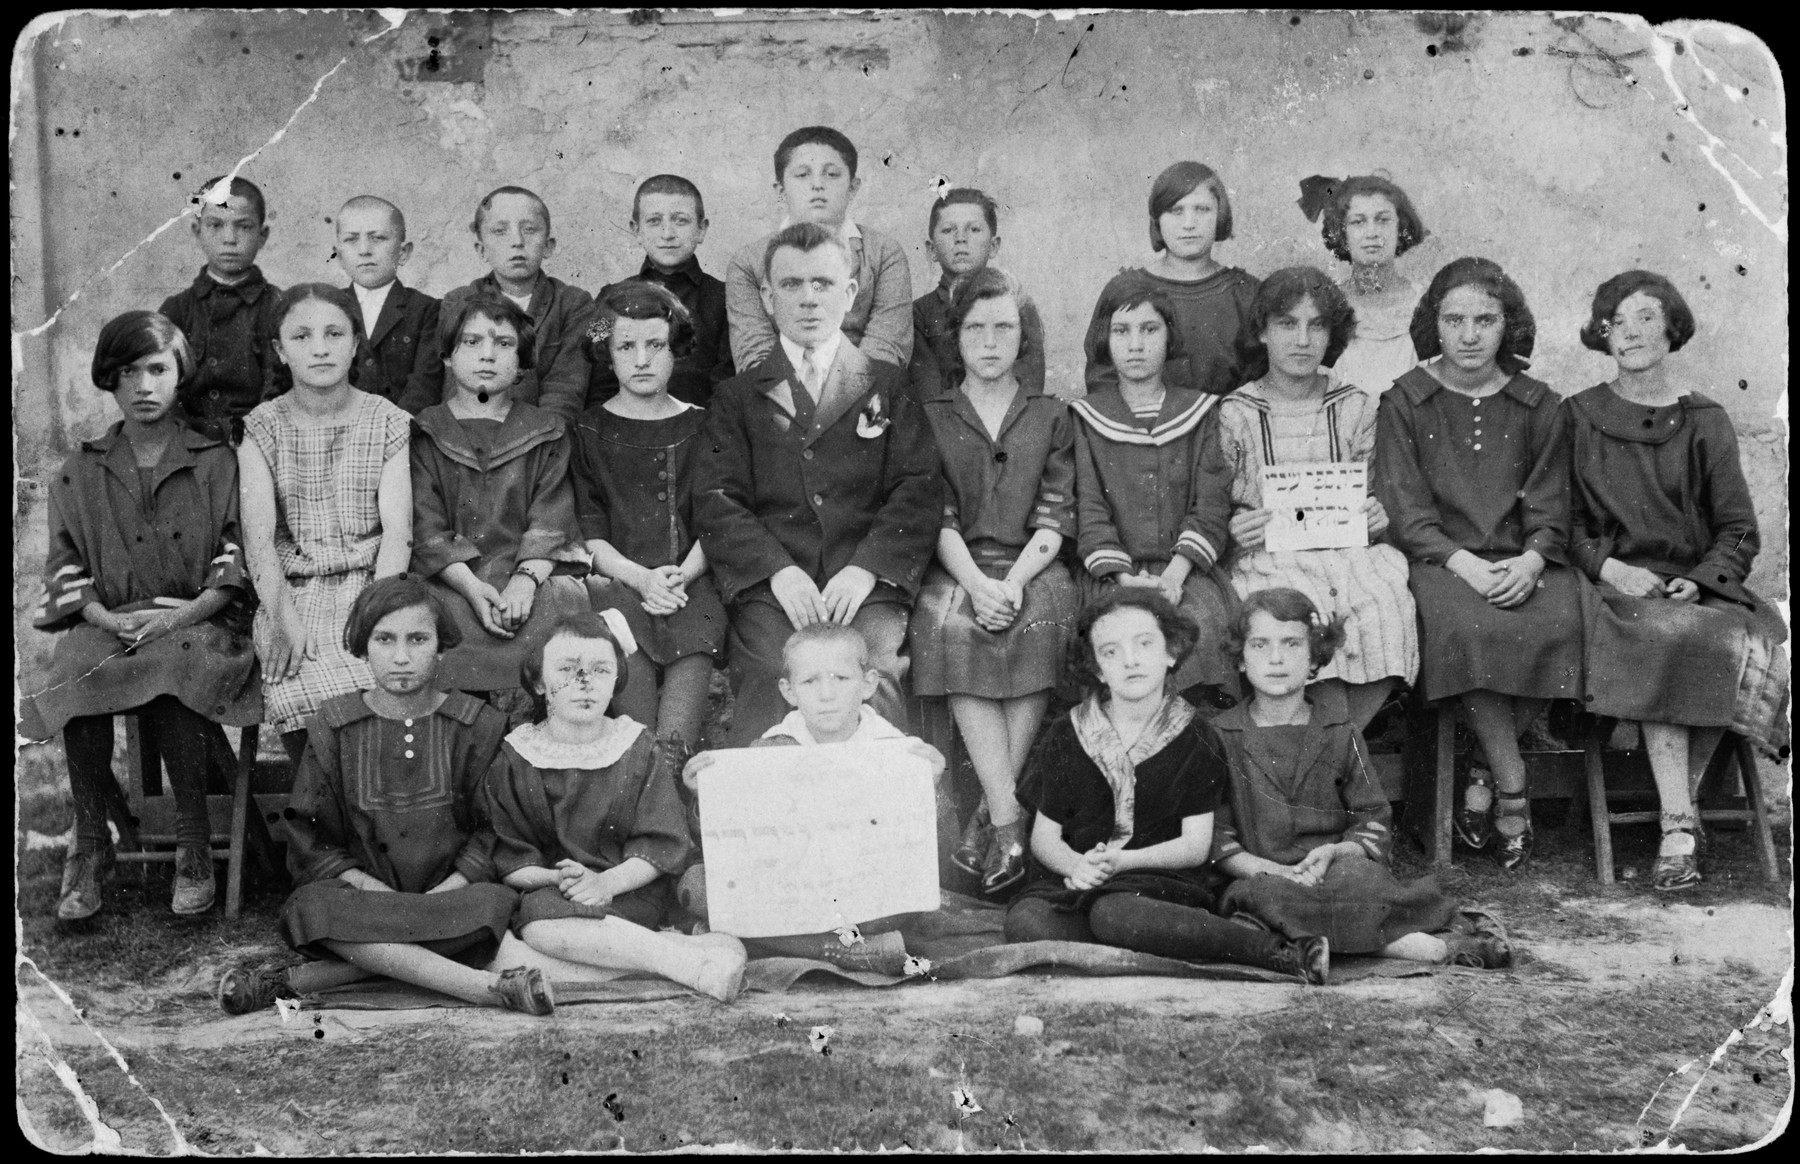 Group portrait of children and faculty in a Hebrew school in Grzymalow.  Lea Somerstein is pictured on the bottom right.